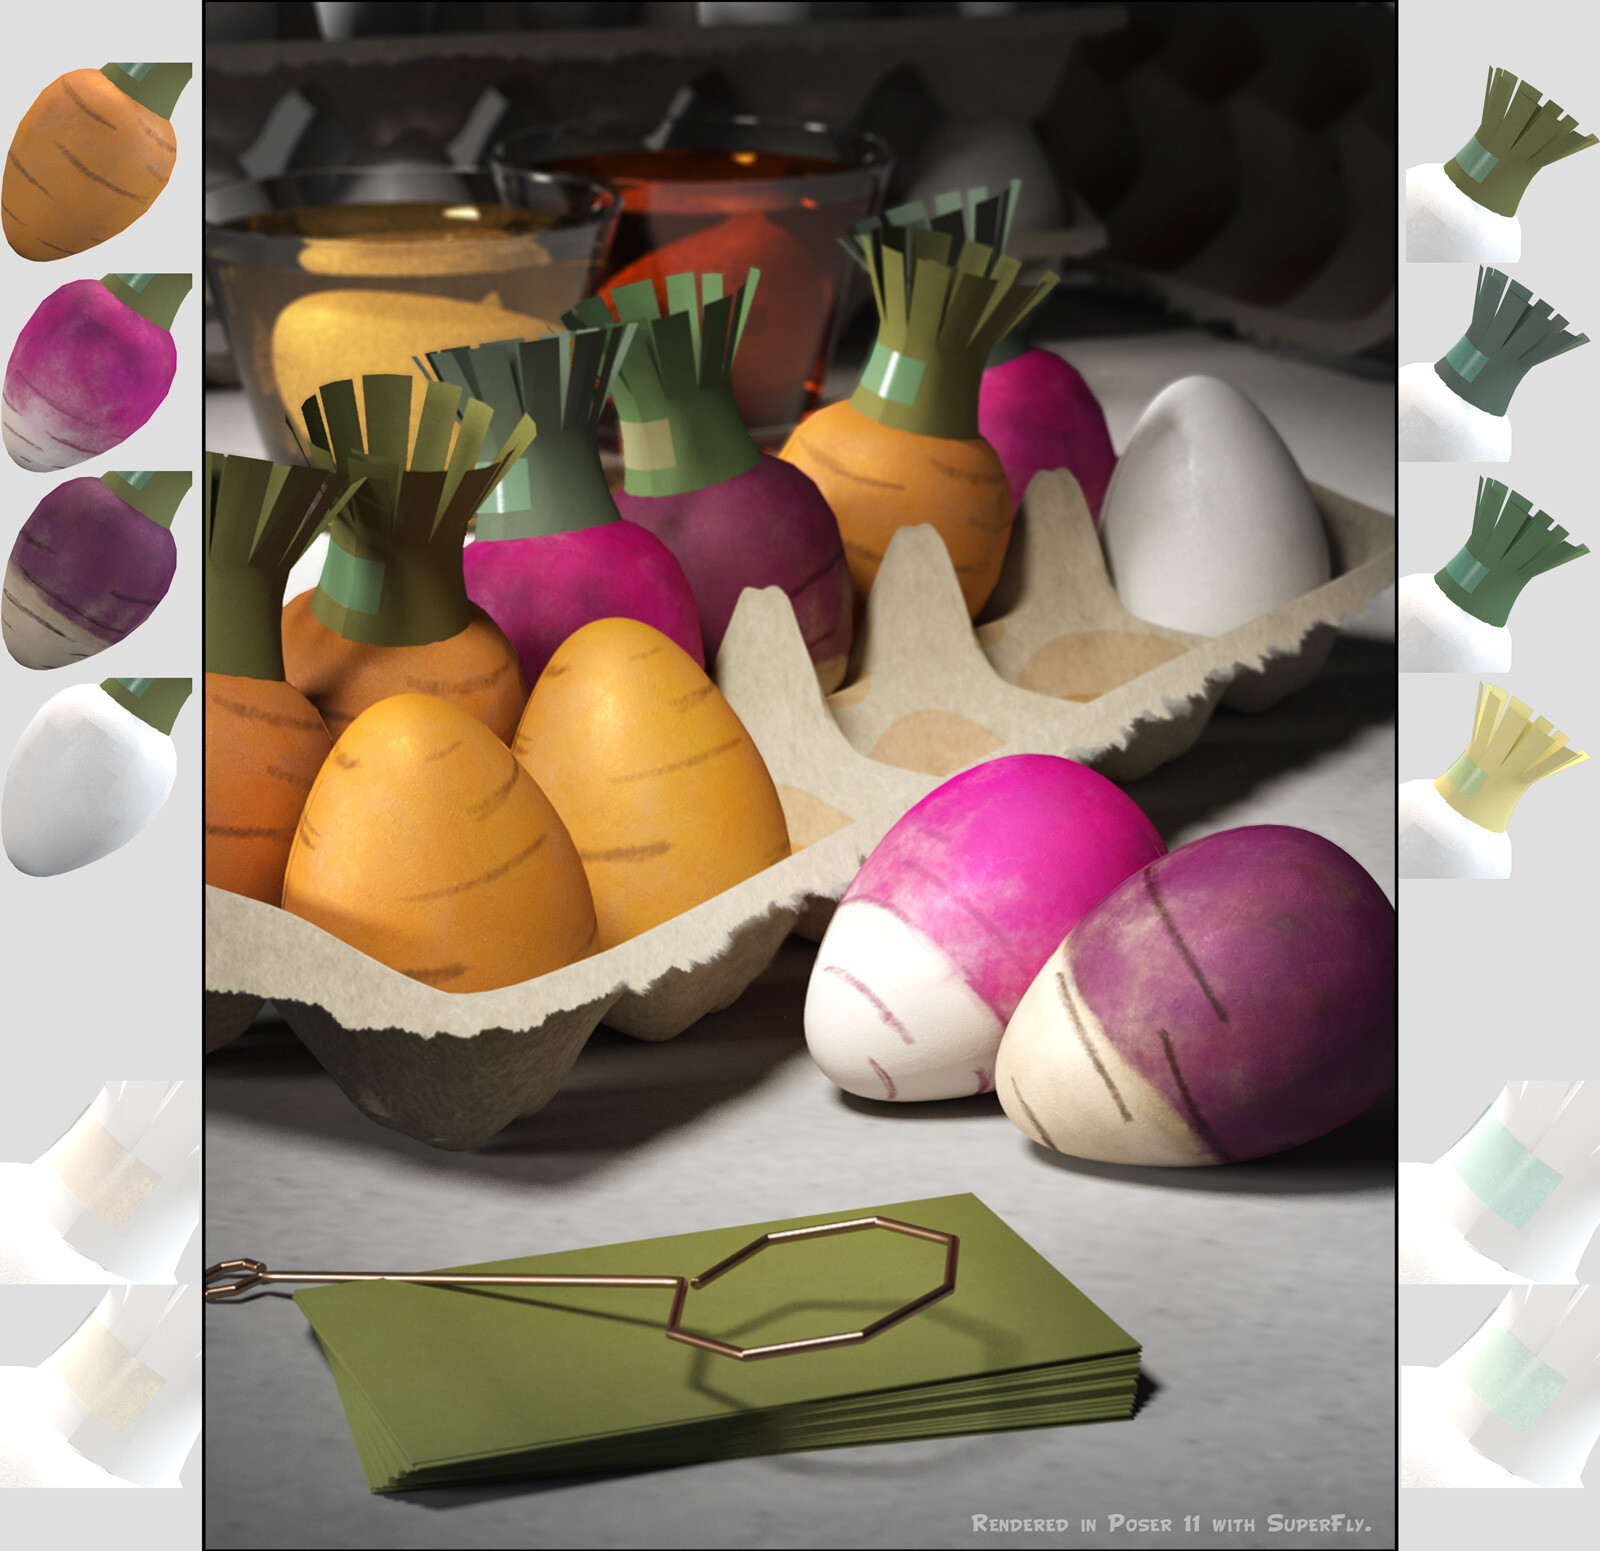 This shows the color and texture options for the decorated eggs themselves, as rendered in the SuperFly/Cycles render engine in Poser.